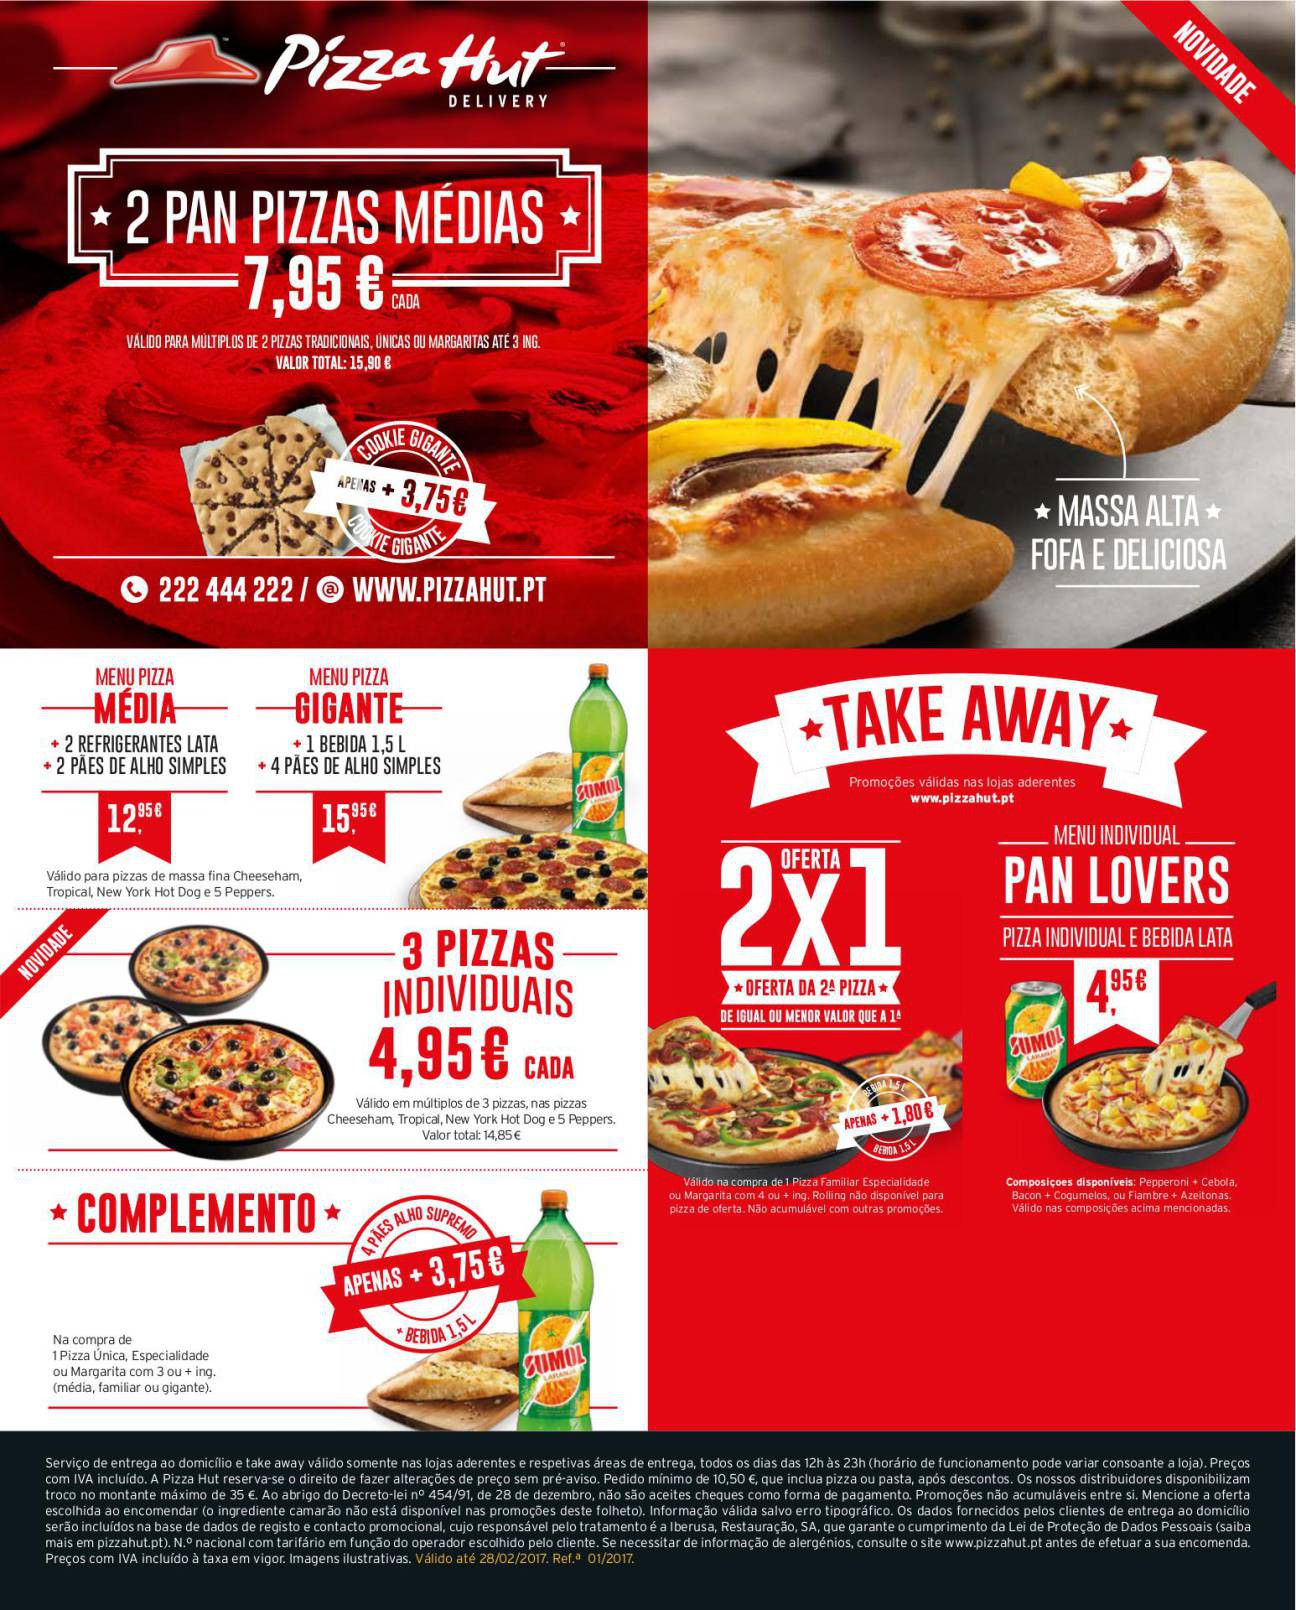 pizza-hut-1.jpg